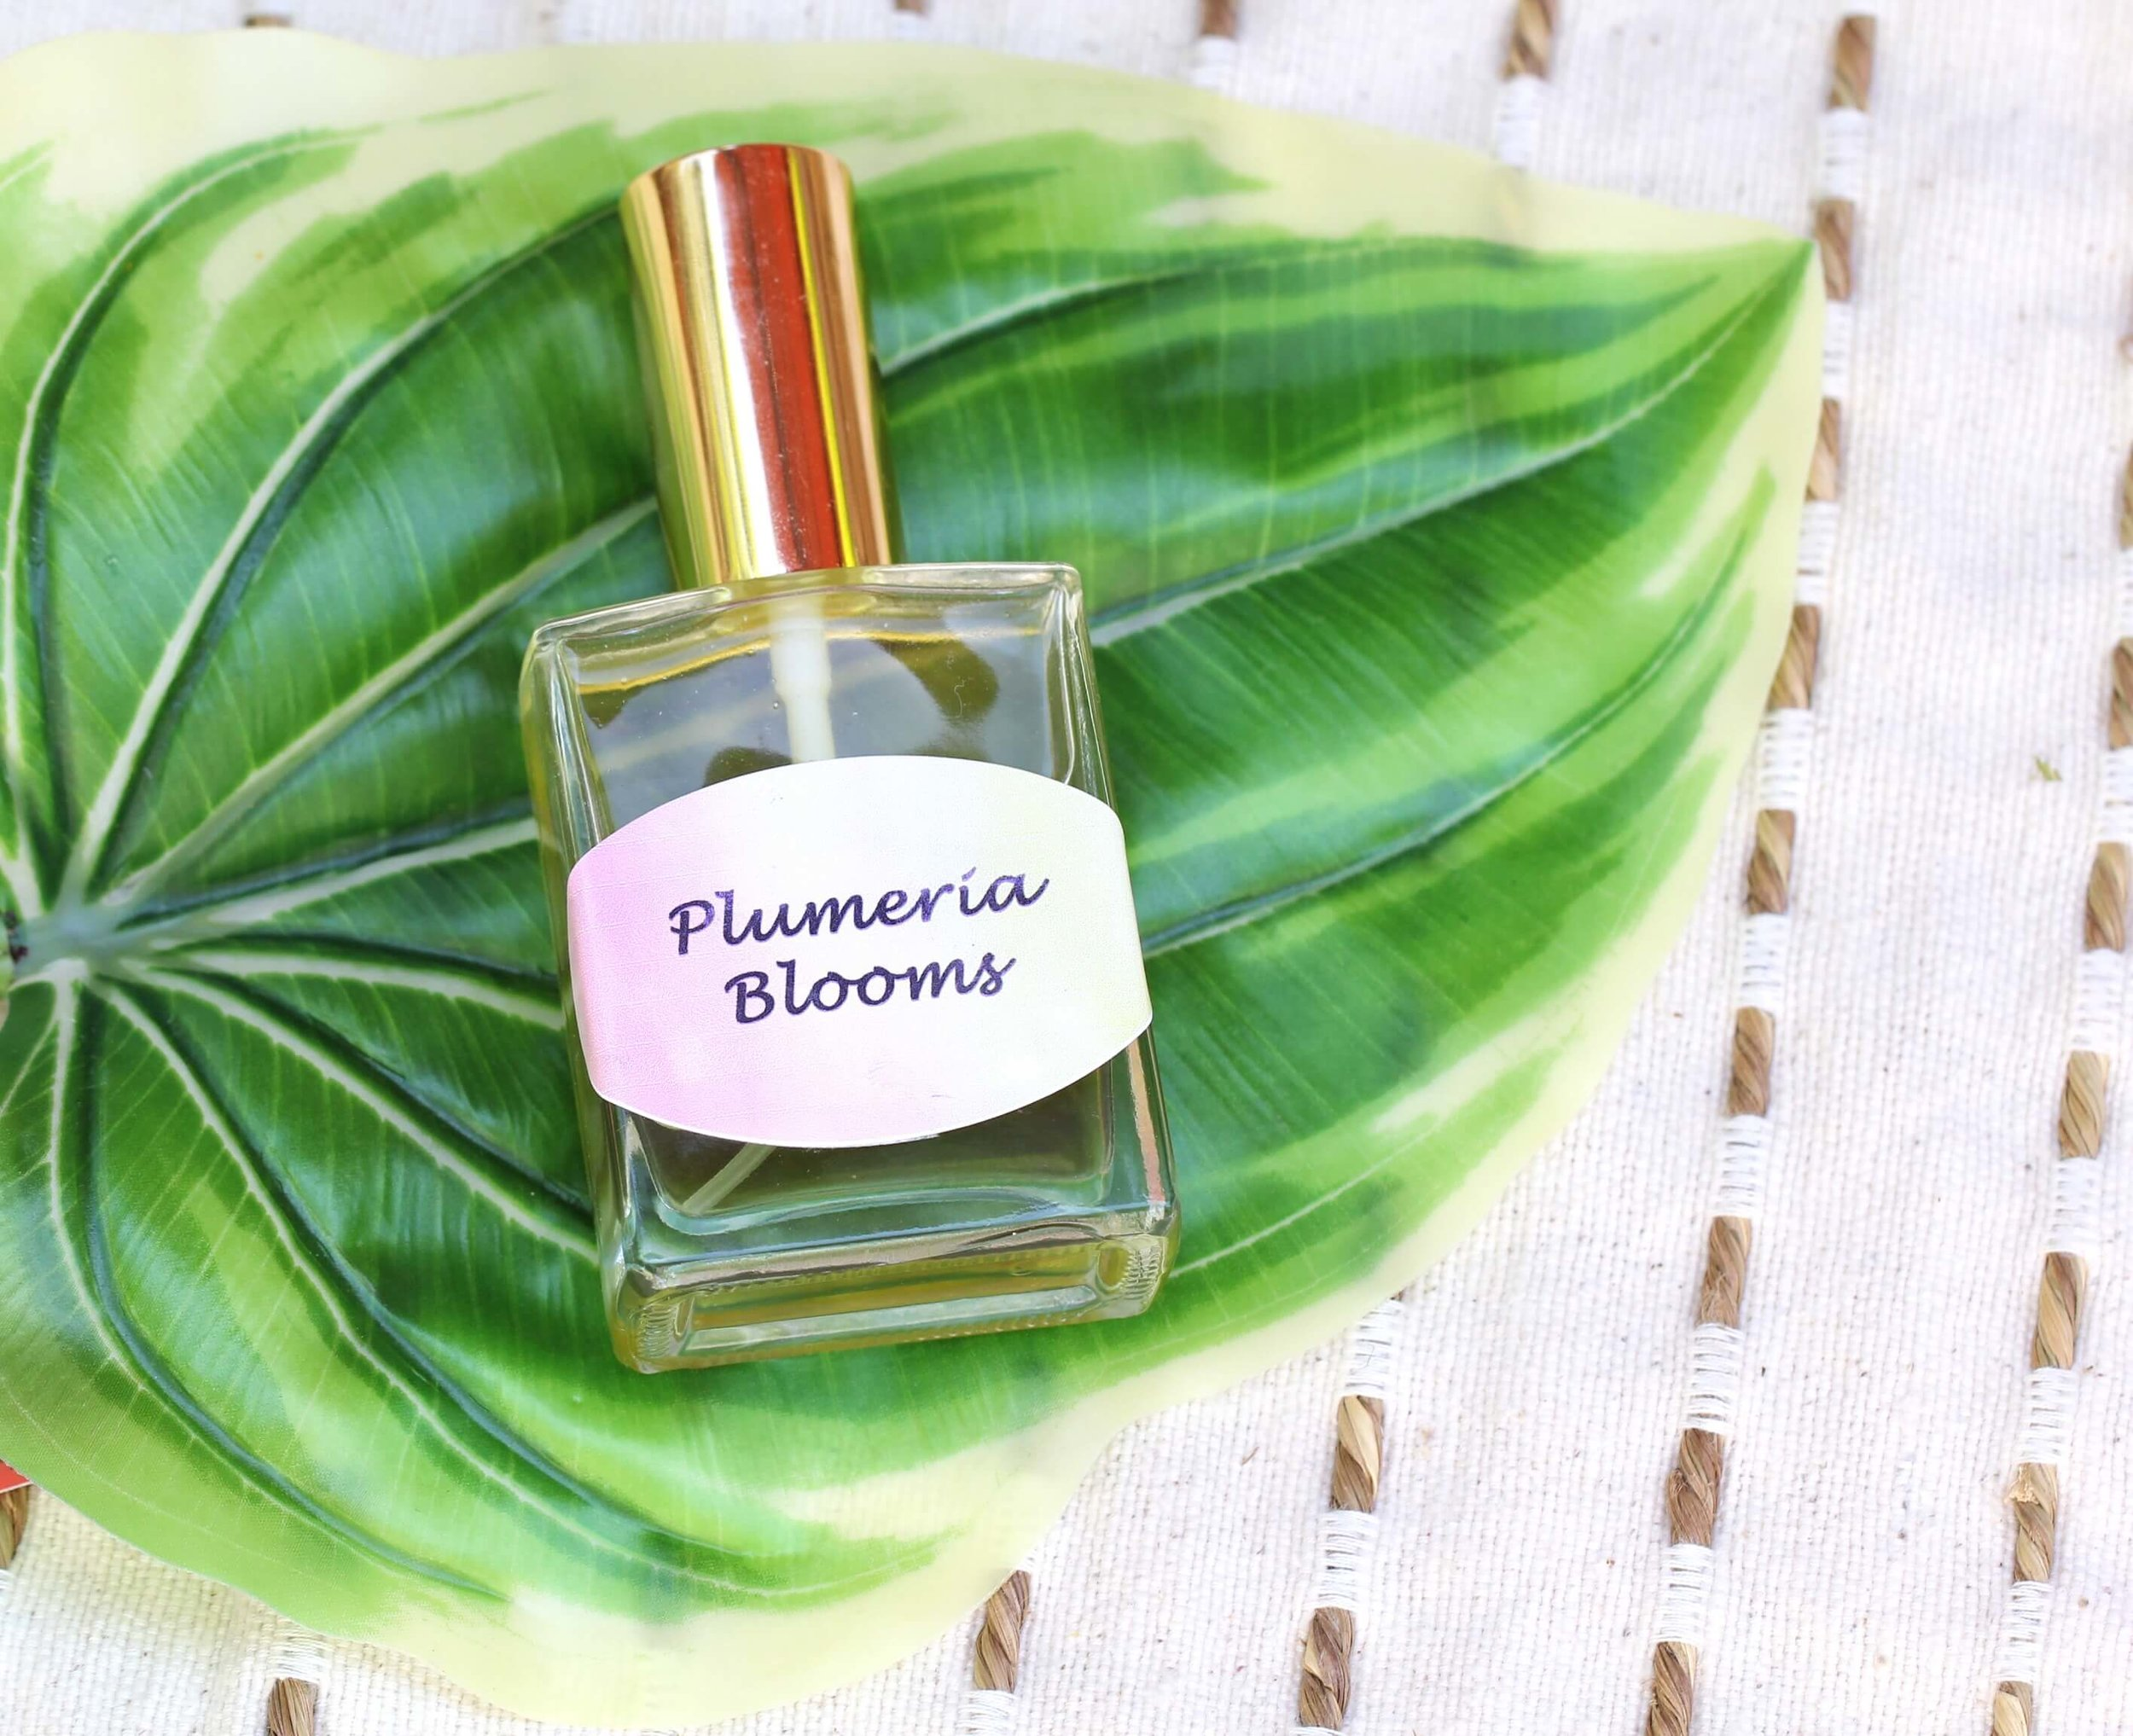 How to make DIY Perfume using fragrance oils and essential oils. The Plumeria scent provides a tropical oasis feeling for everyday! Plus free printable labels!